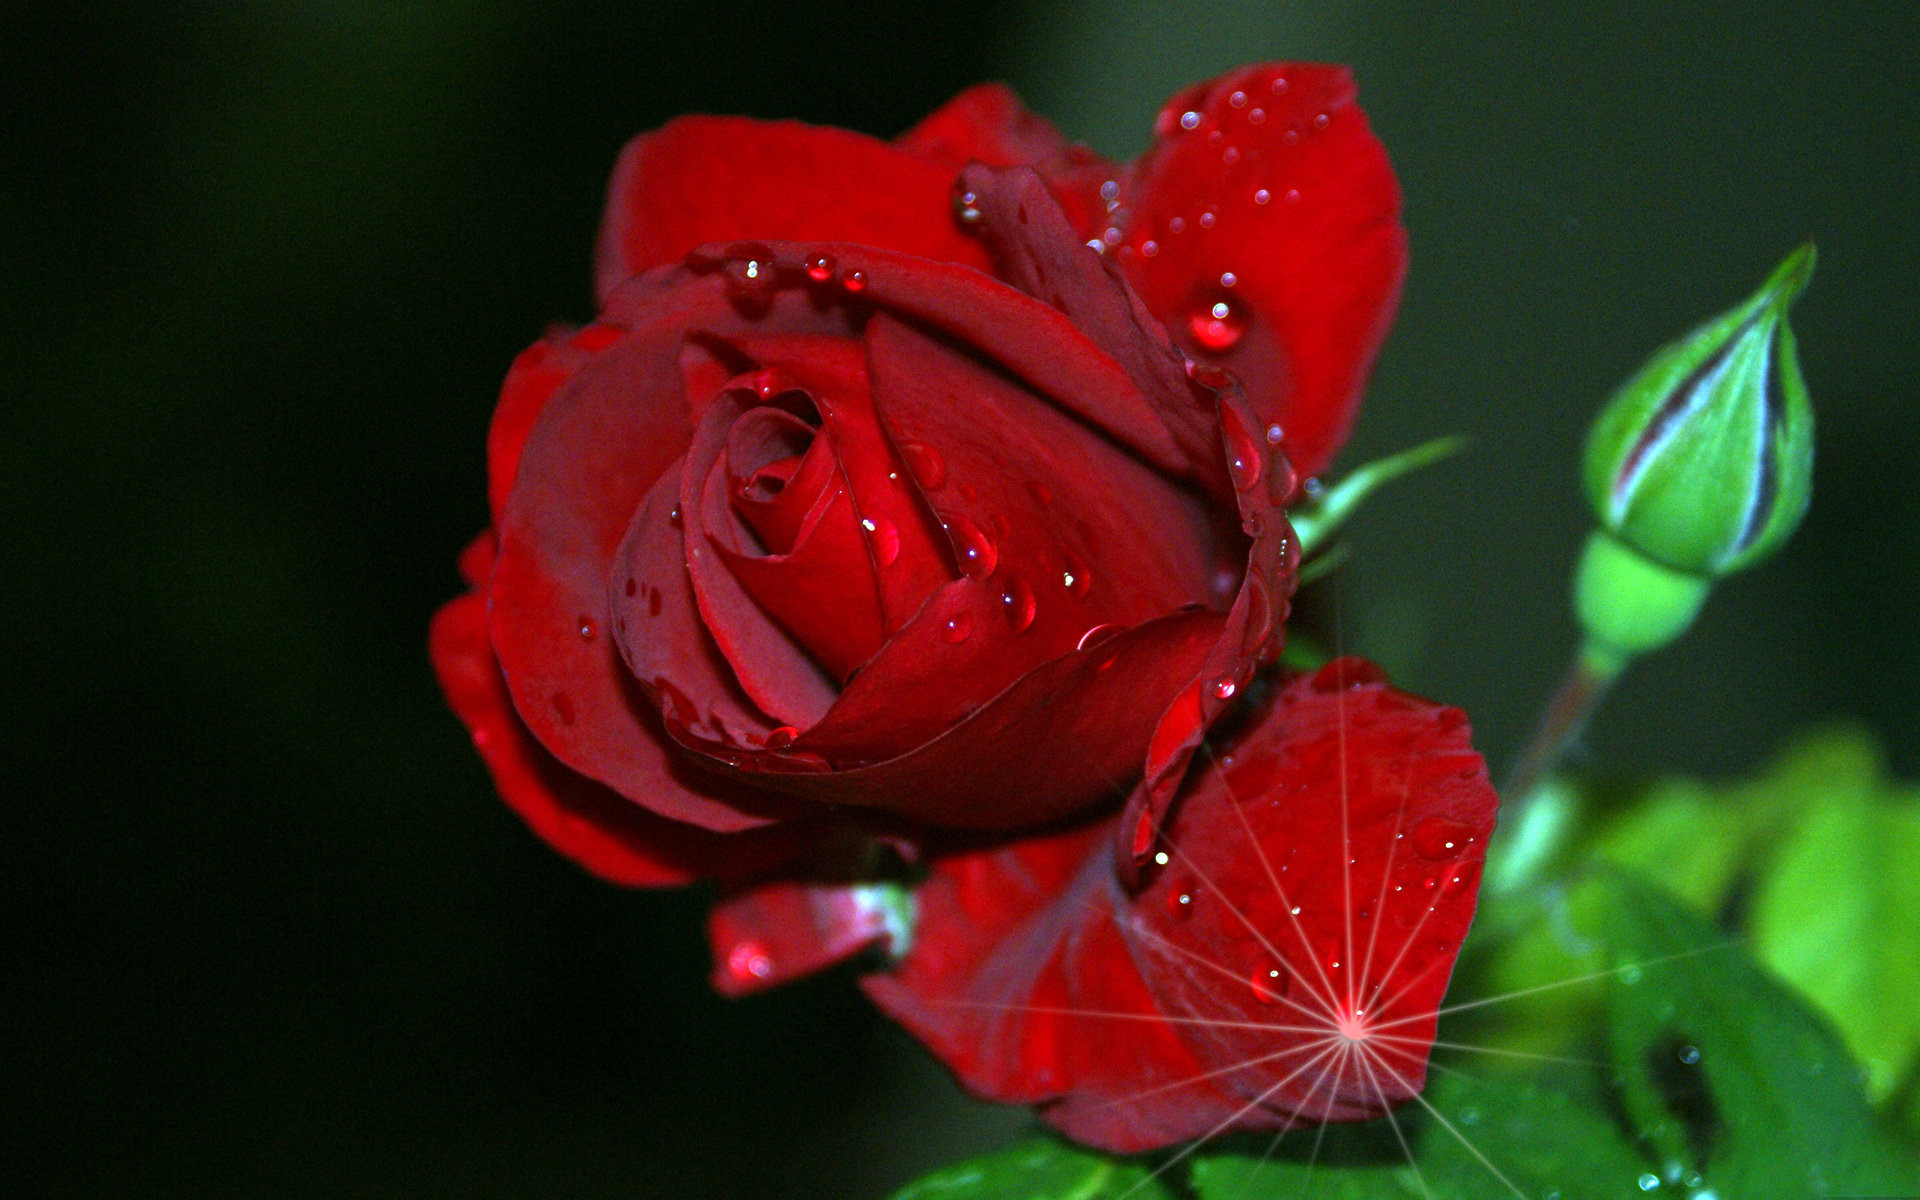 Red Rose Love Wallpaper (55+ Images